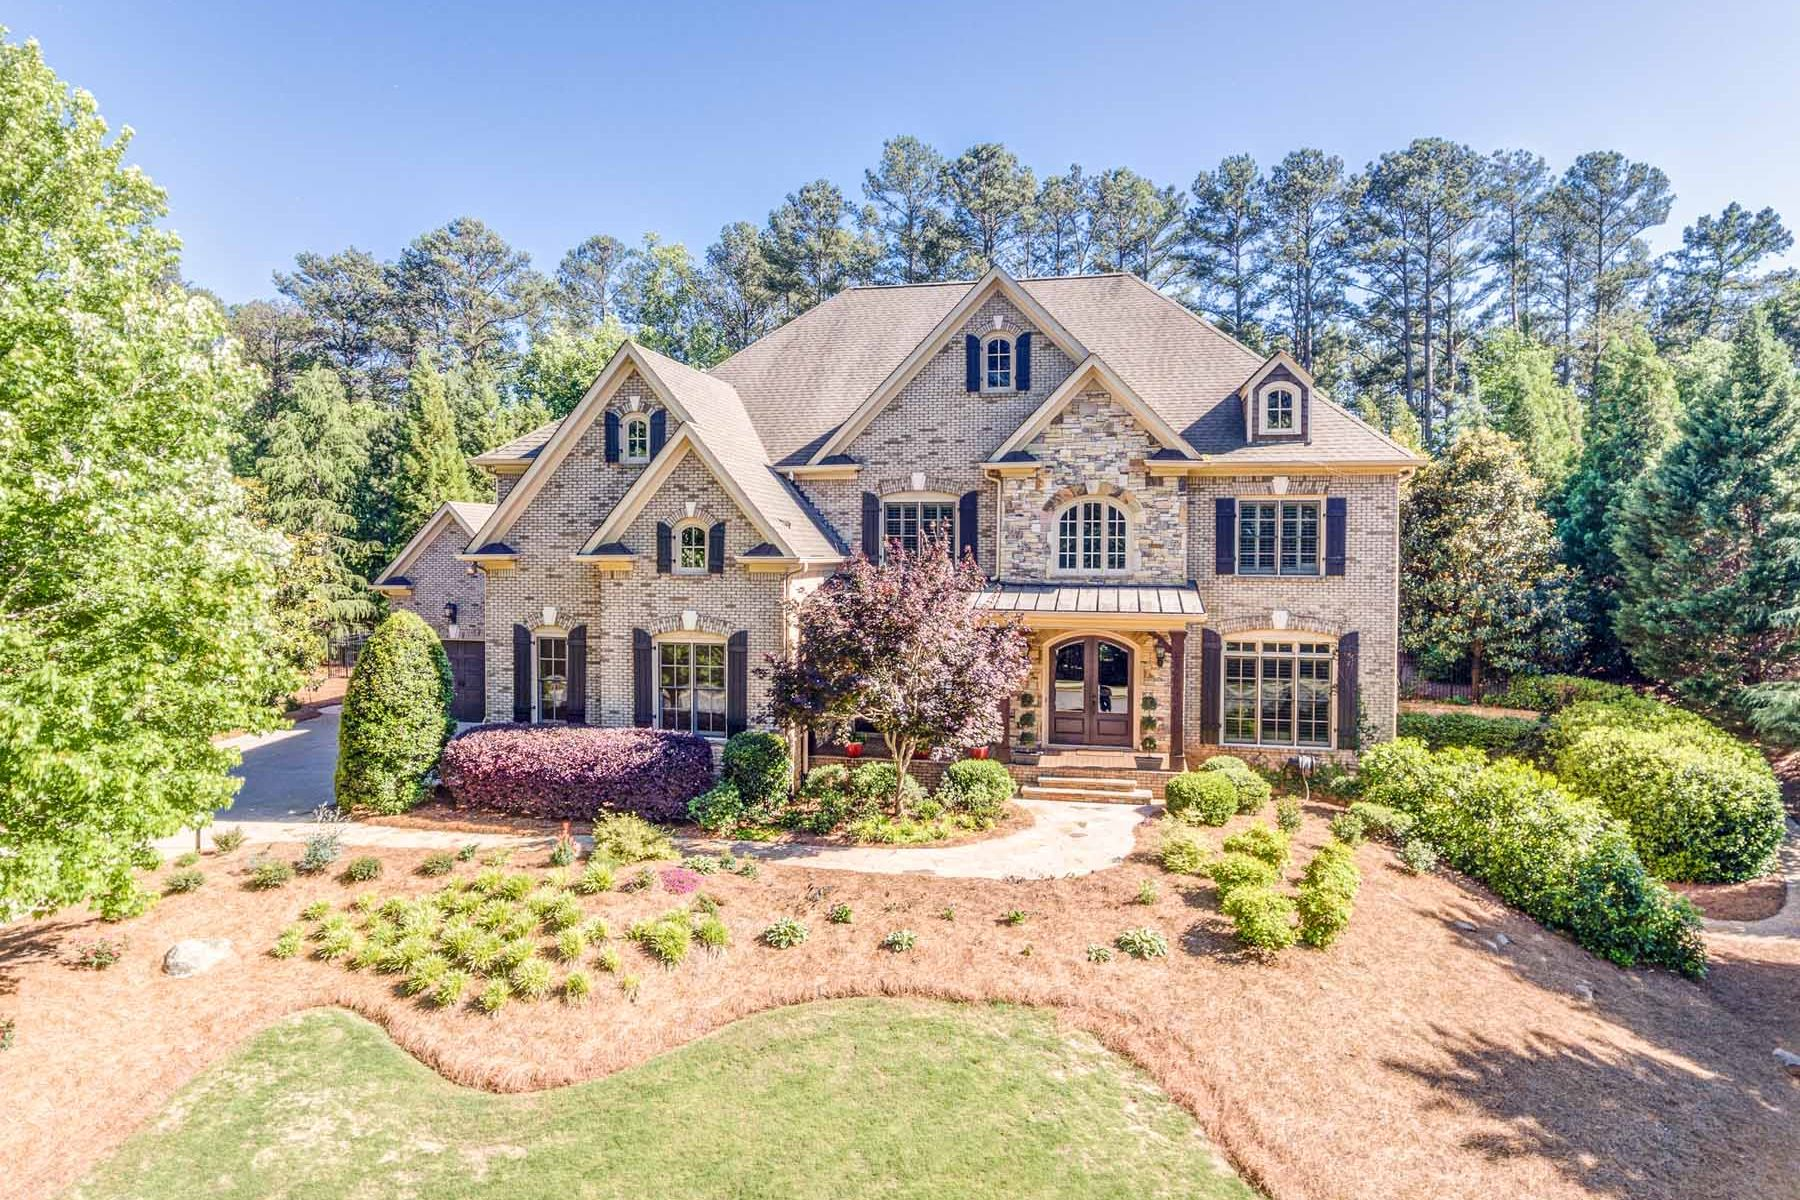 Single Family Home for Sale at Entertainer's Dream In White Columns 611 Glenover Drive Milton, Georgia, 30004 United States